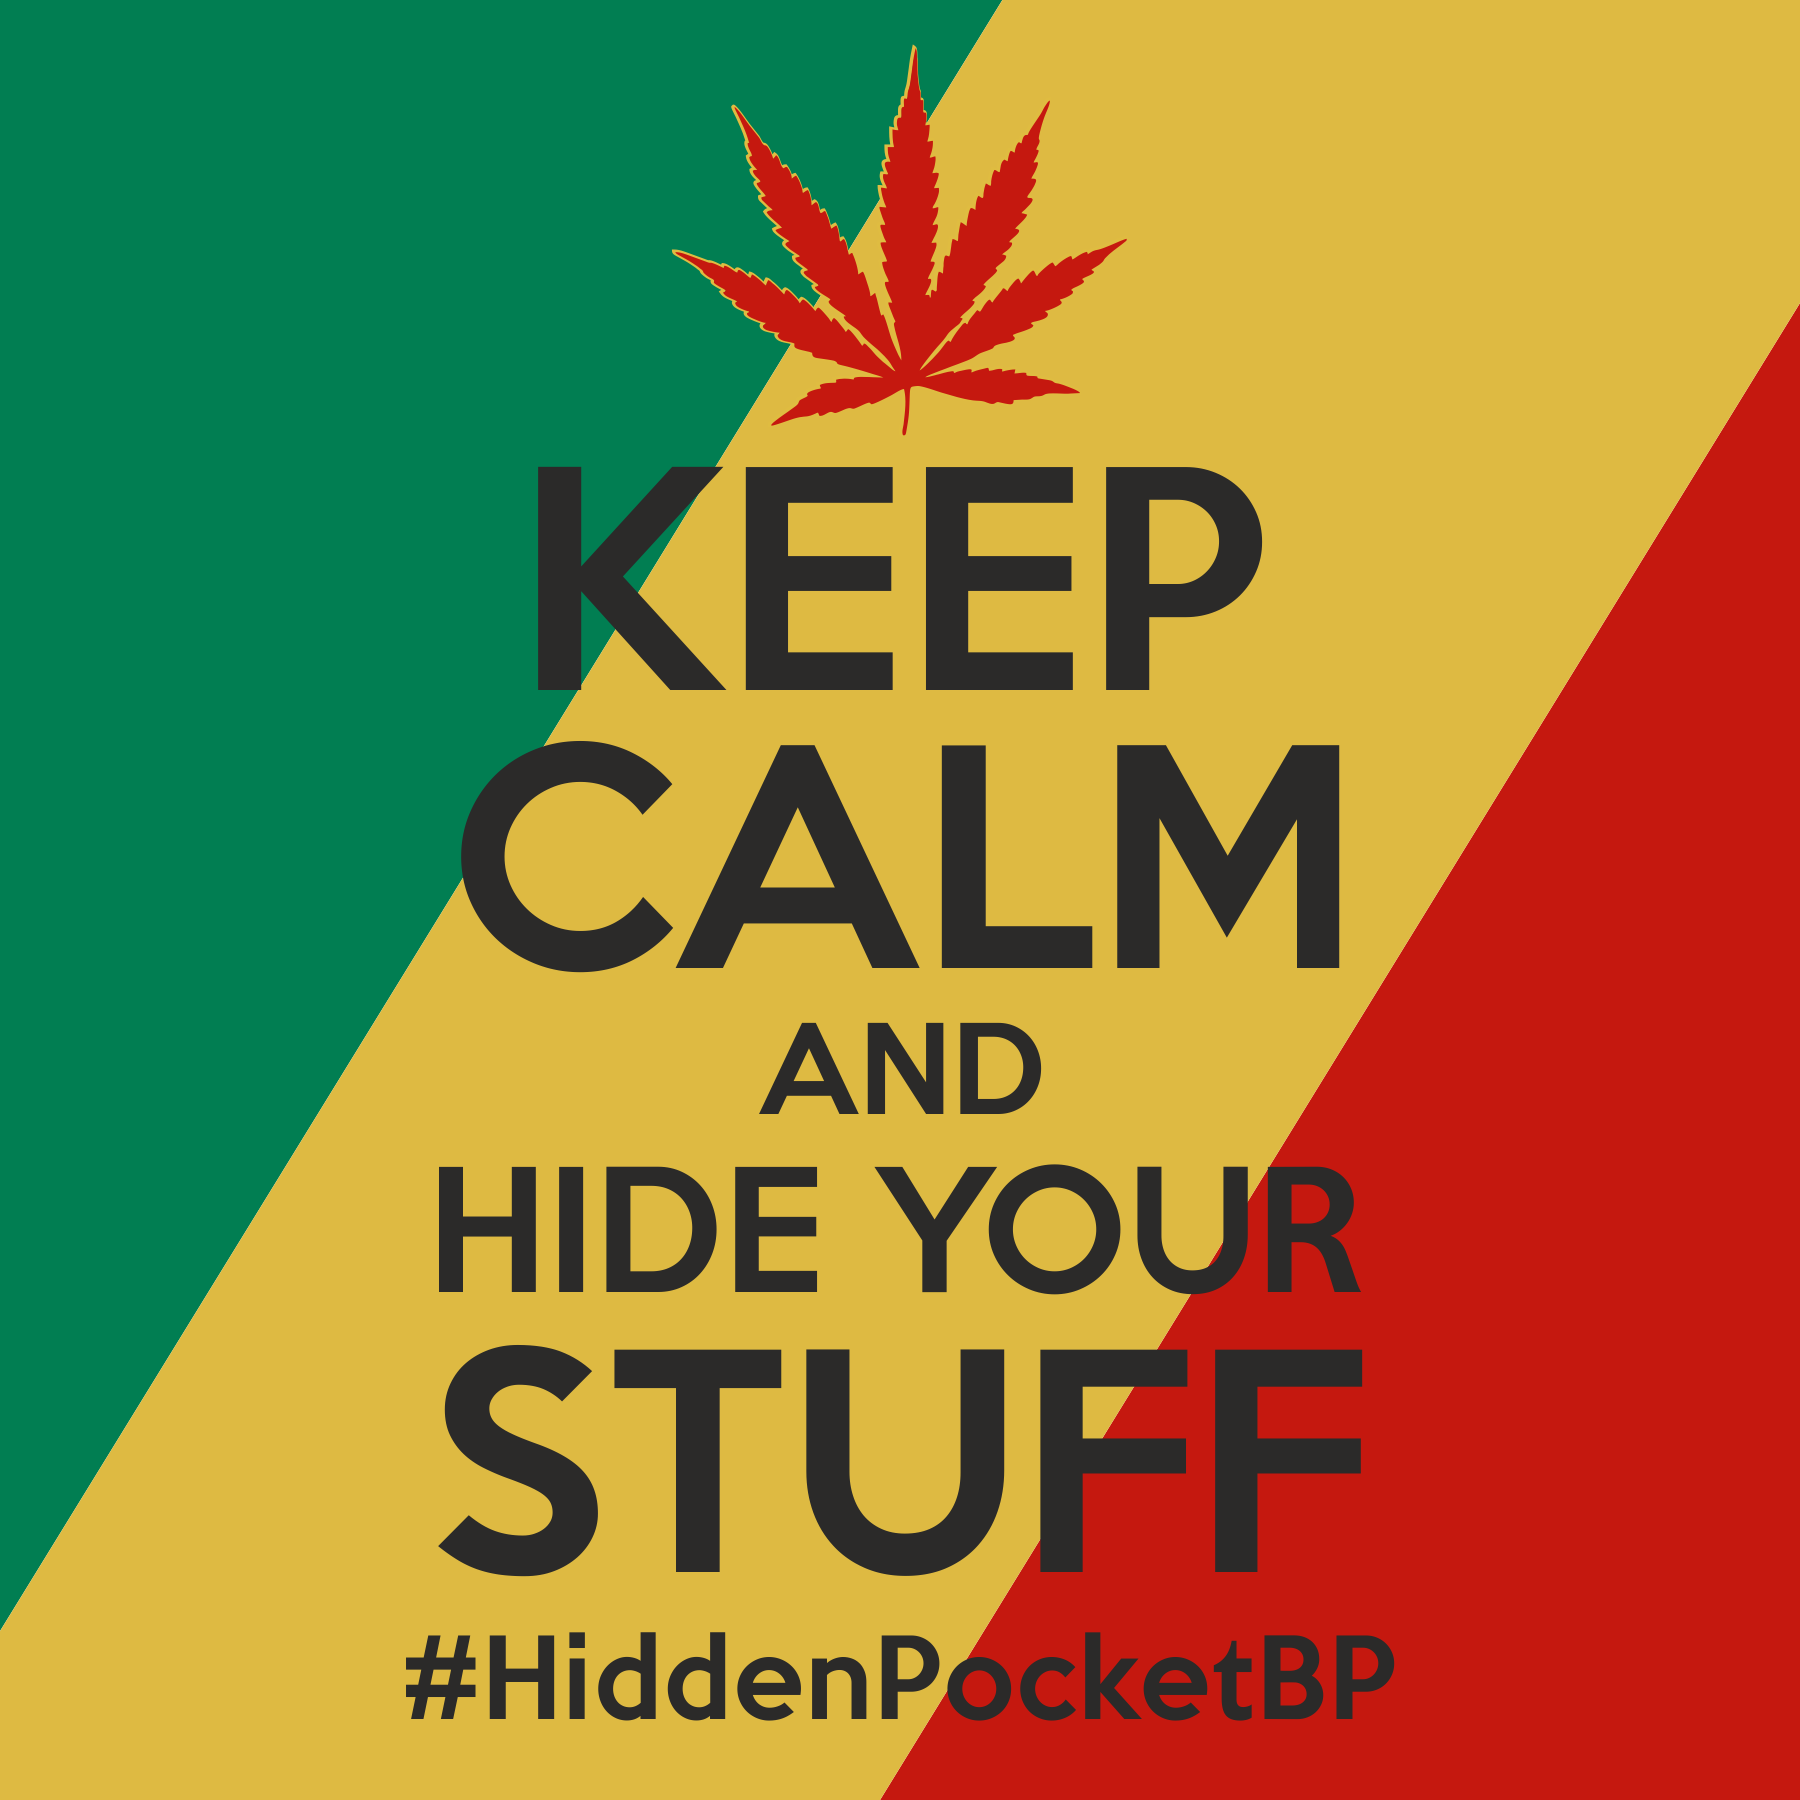 KEEP CALM and HIDE your STUFF #HiddenPocketBP